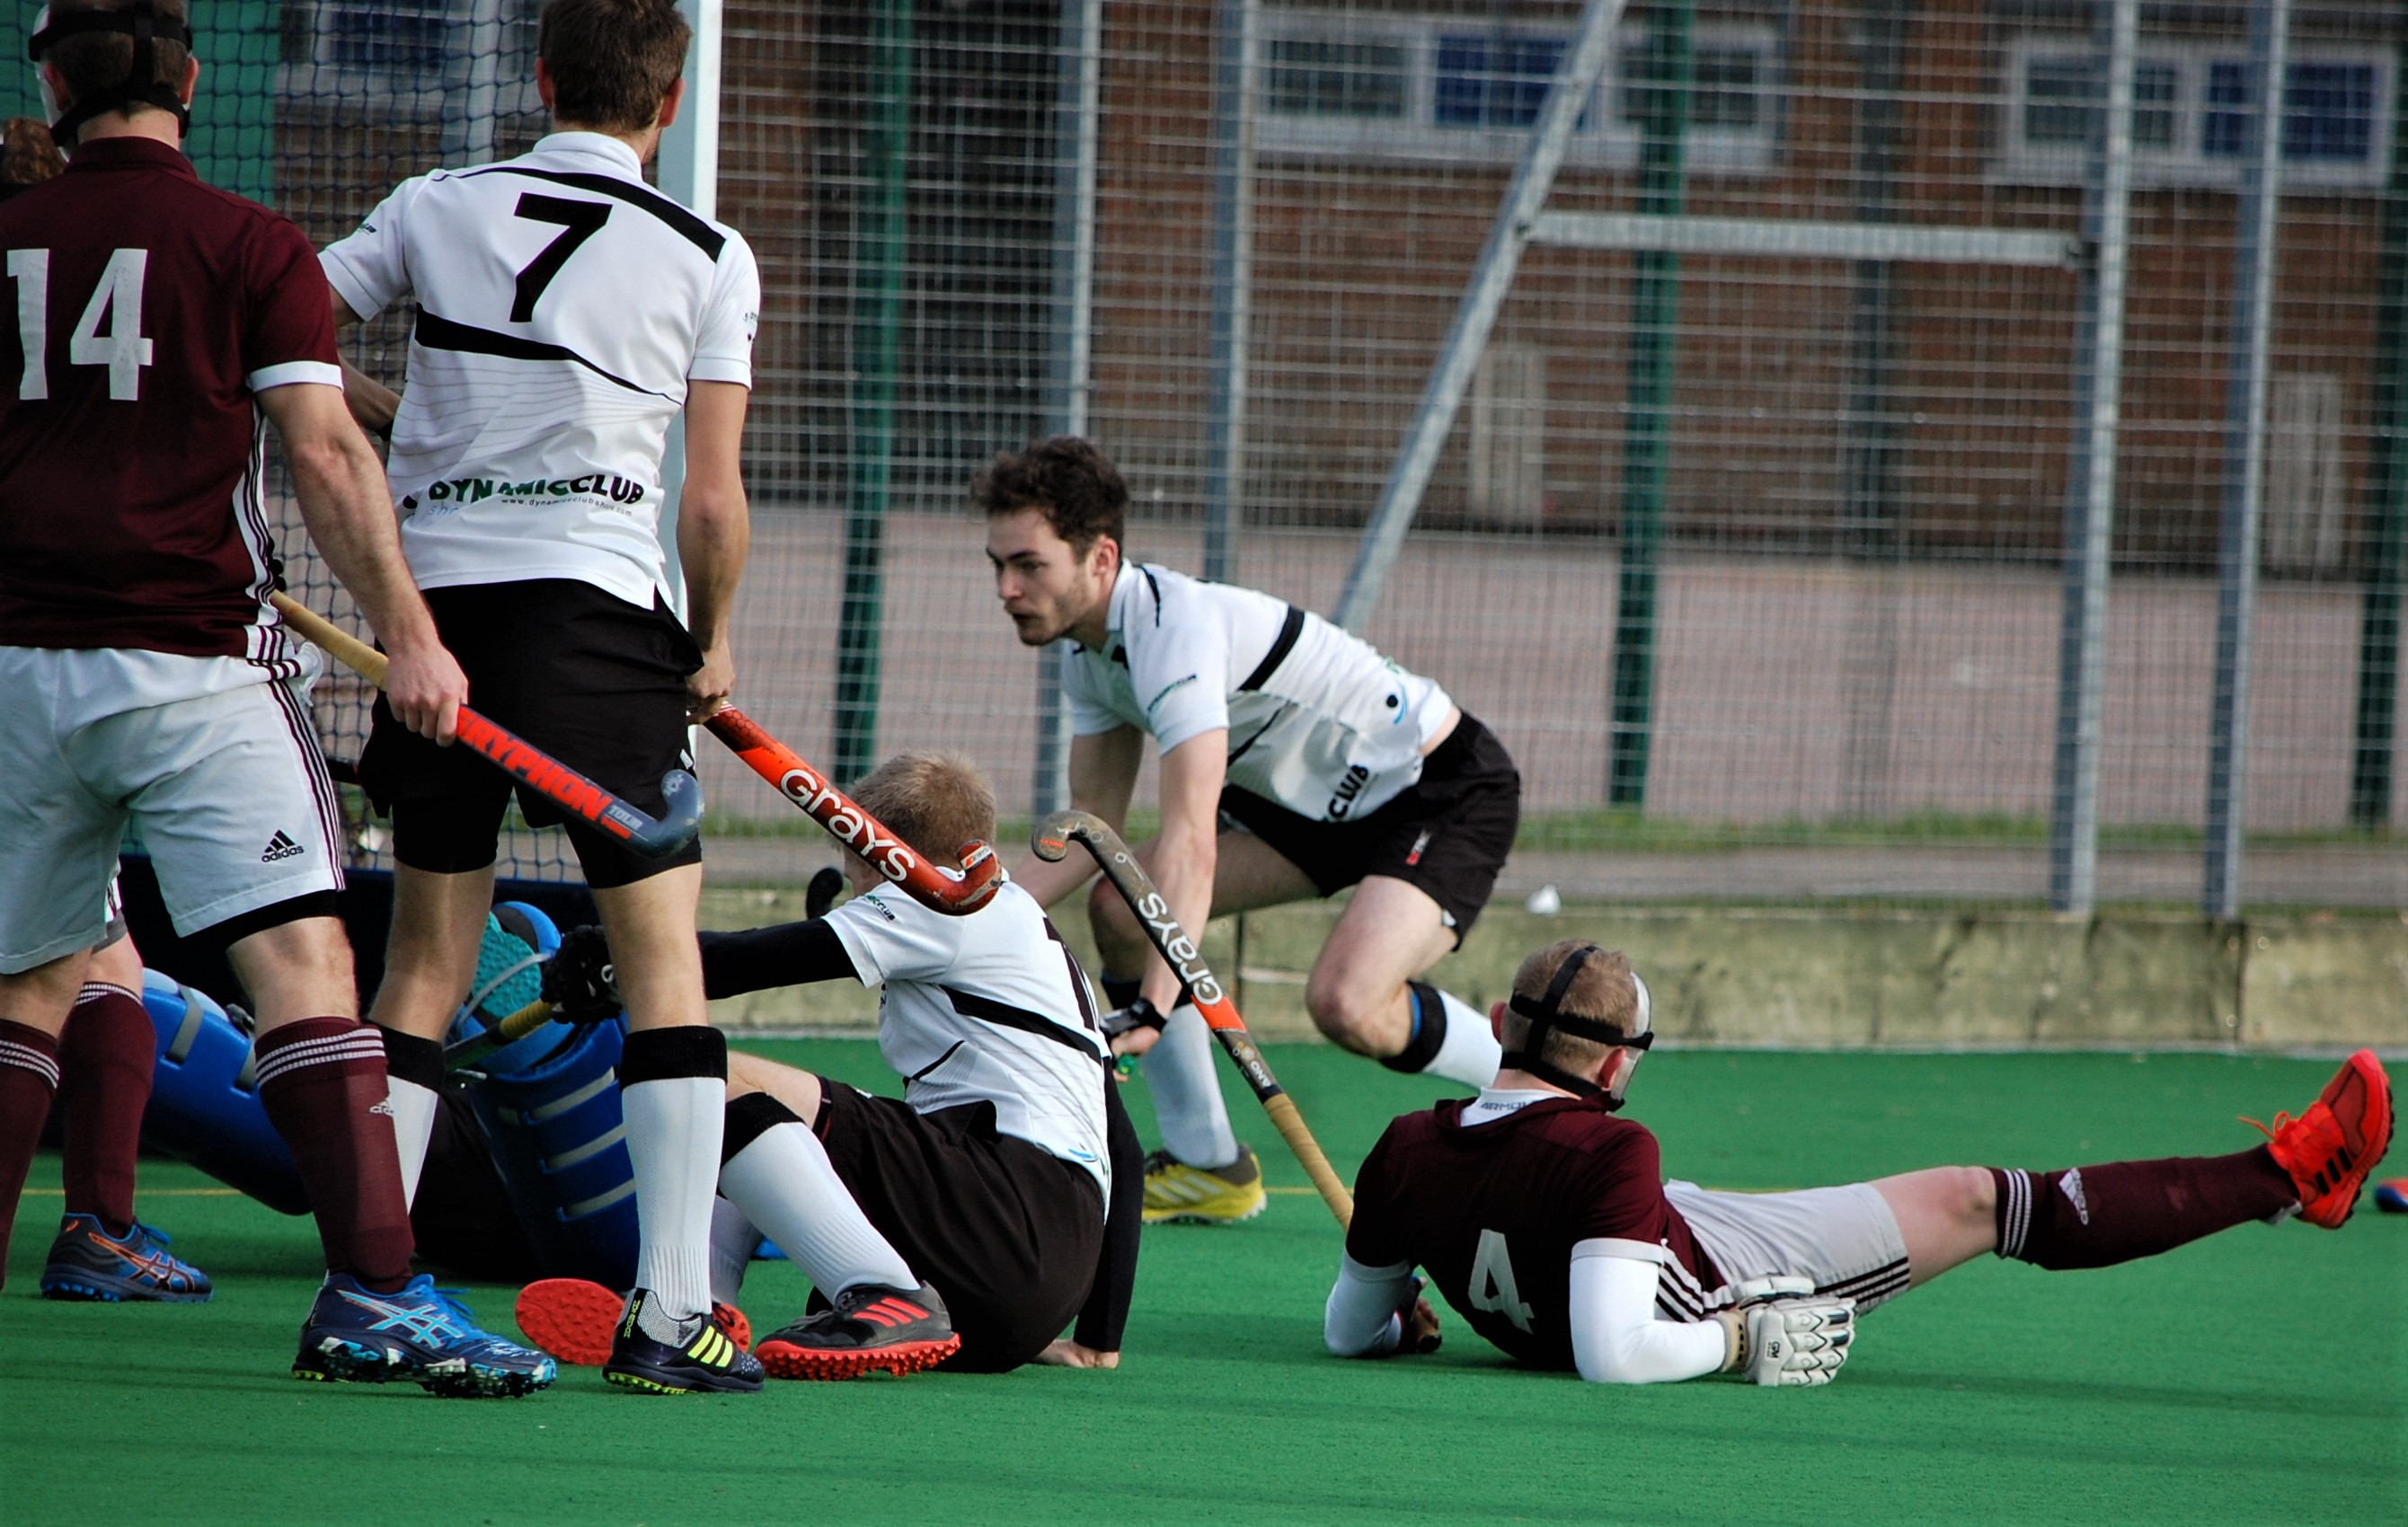 Bedford Hockey Club Men's 1s defence give it their all to hold off Harleston Magpies